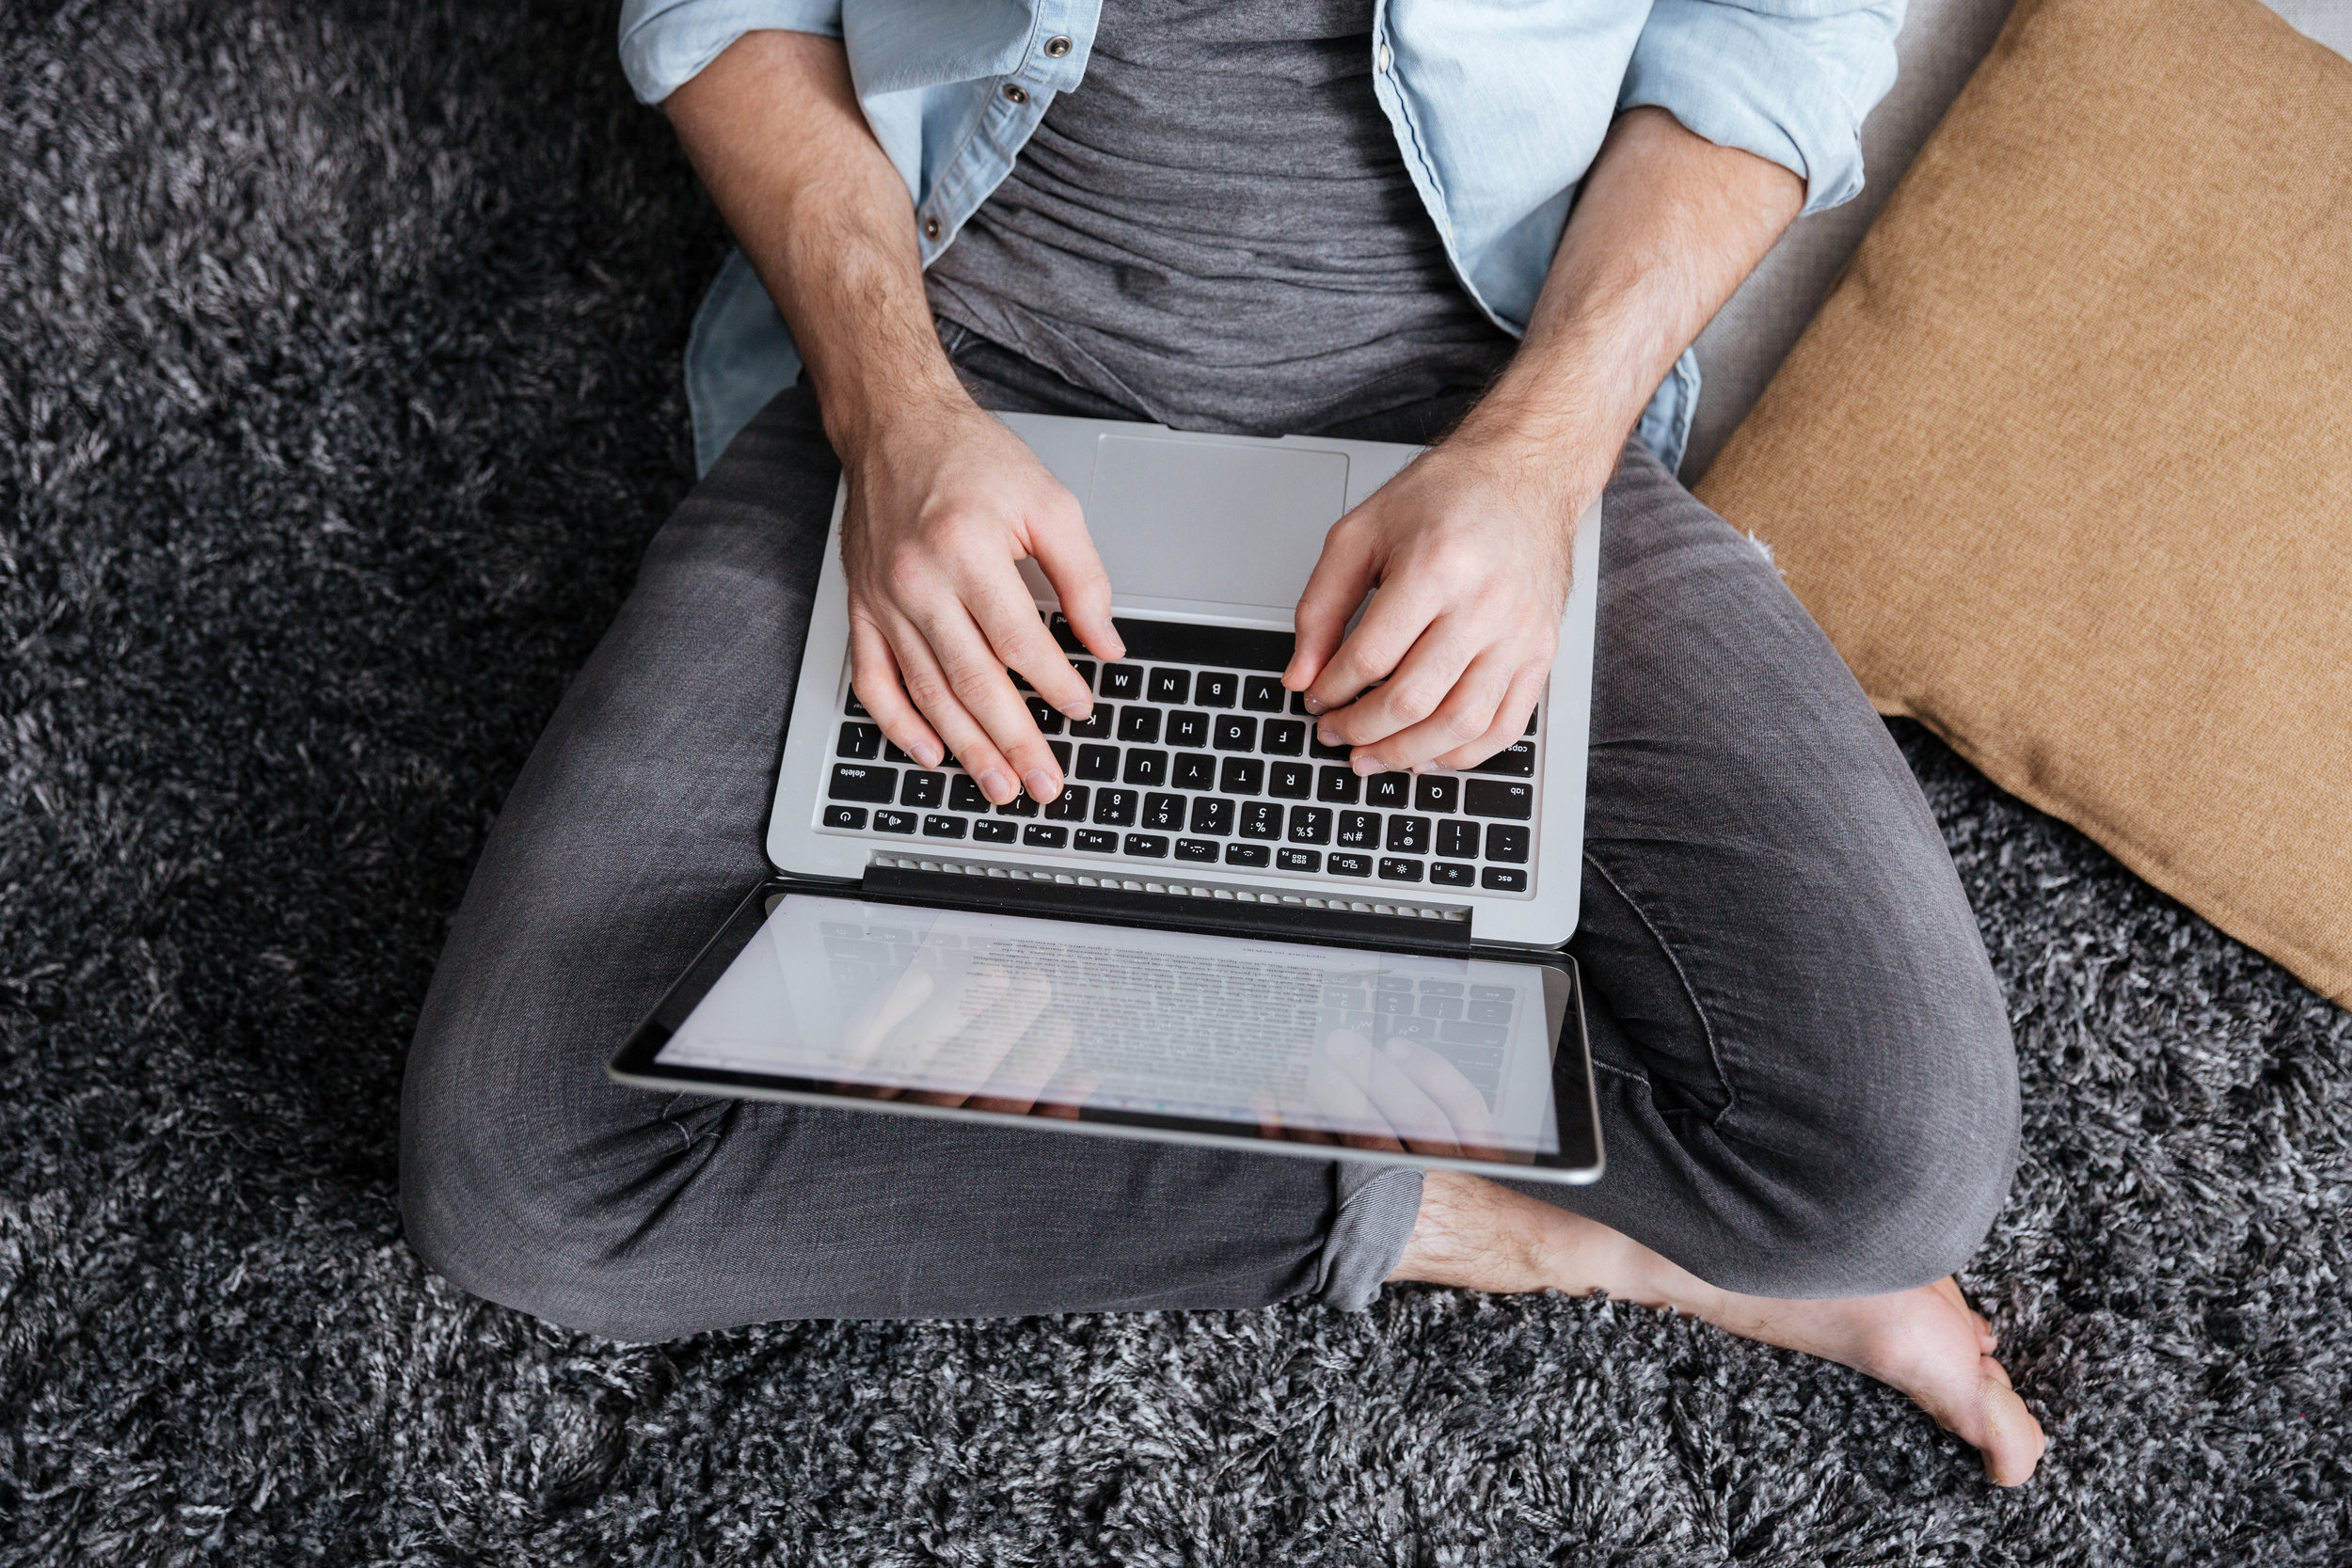 graphicstock-top-view-of-a-casual-man-sitting-on-carpet-and-typing-on-laptop-computer-at-home_BduhP3Inl.jpg